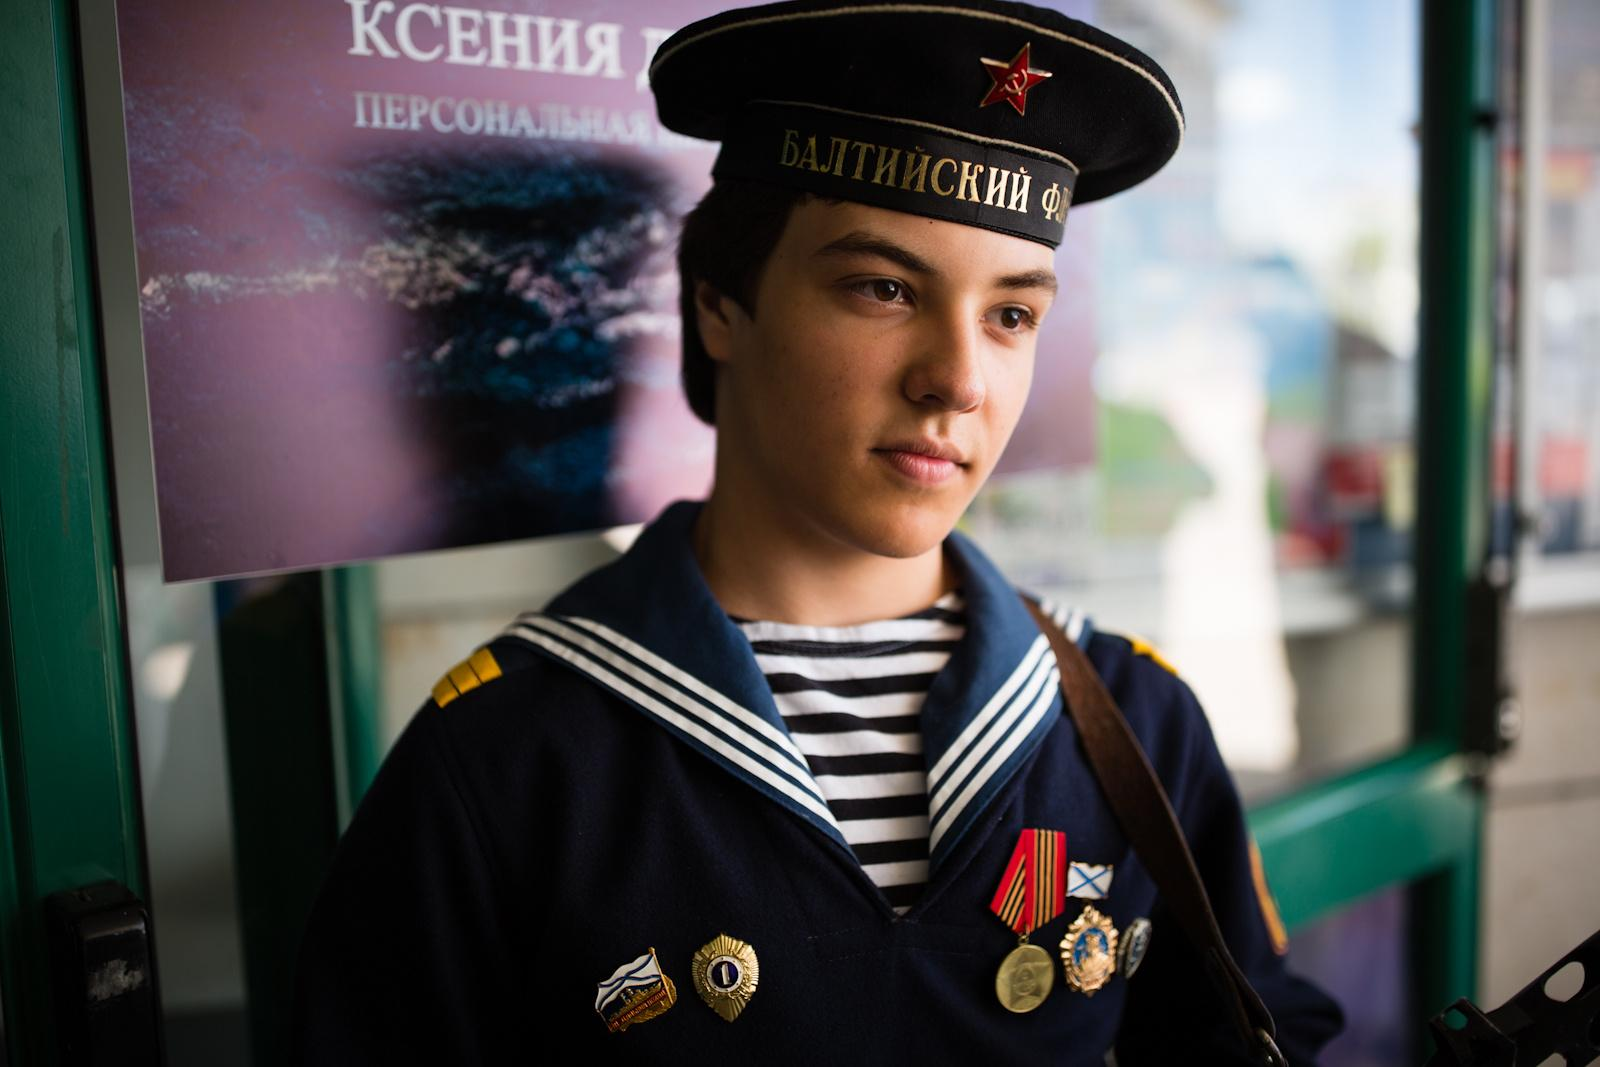 ASHDOD, ISRAEL - MAY 07, 2016: A boy wearing a navy uniform takes part in an event in remembrance of the upcoming Victory Day, marking the anniversary of the Allied victory over Nazi Germany, in the southern city of Ashdod, Israel, May 7, 2016.